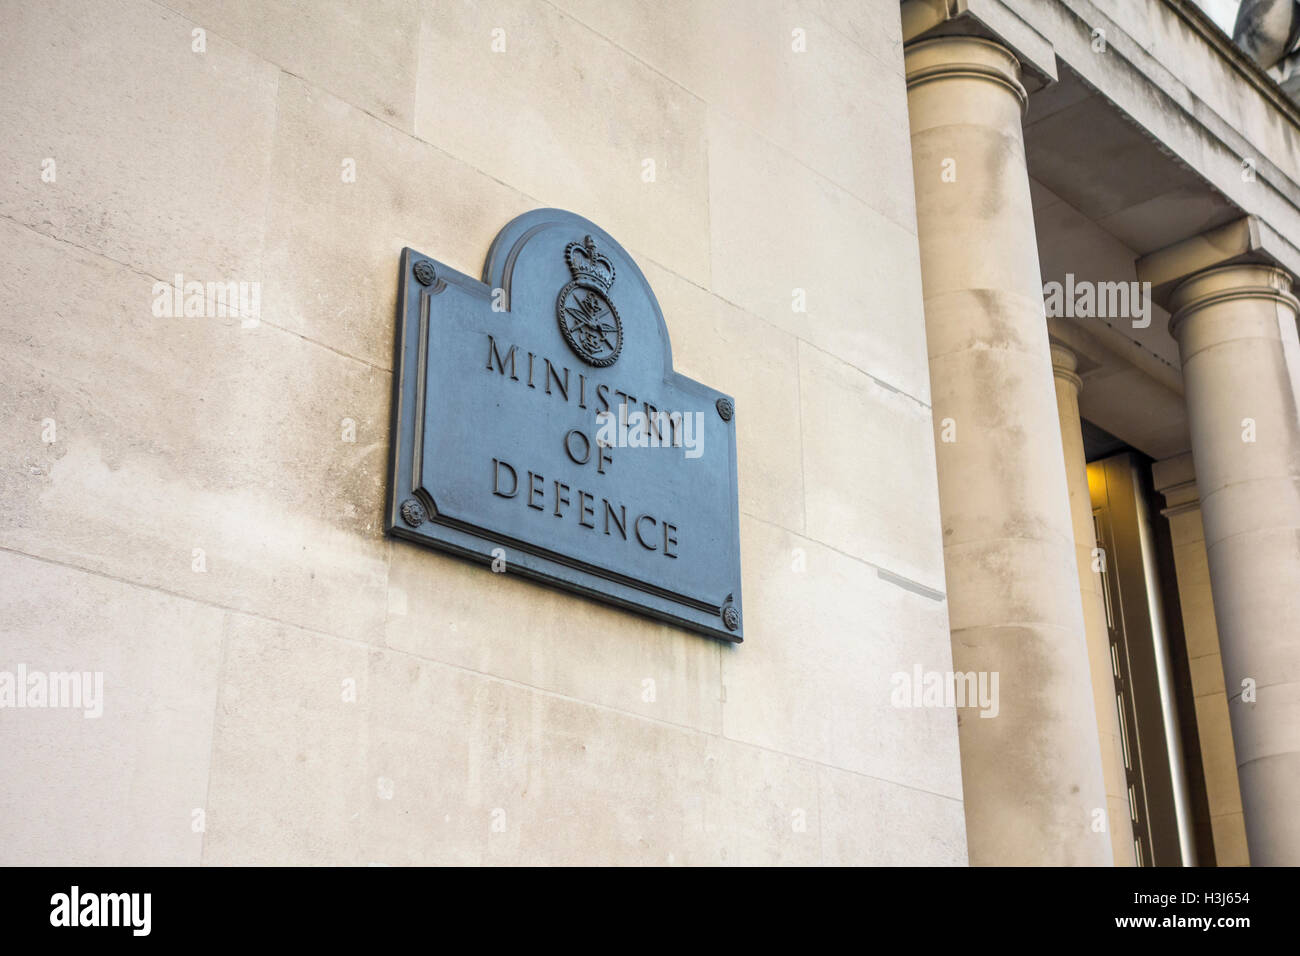 Ministry of Defence building sign, London, UK - Stock Image